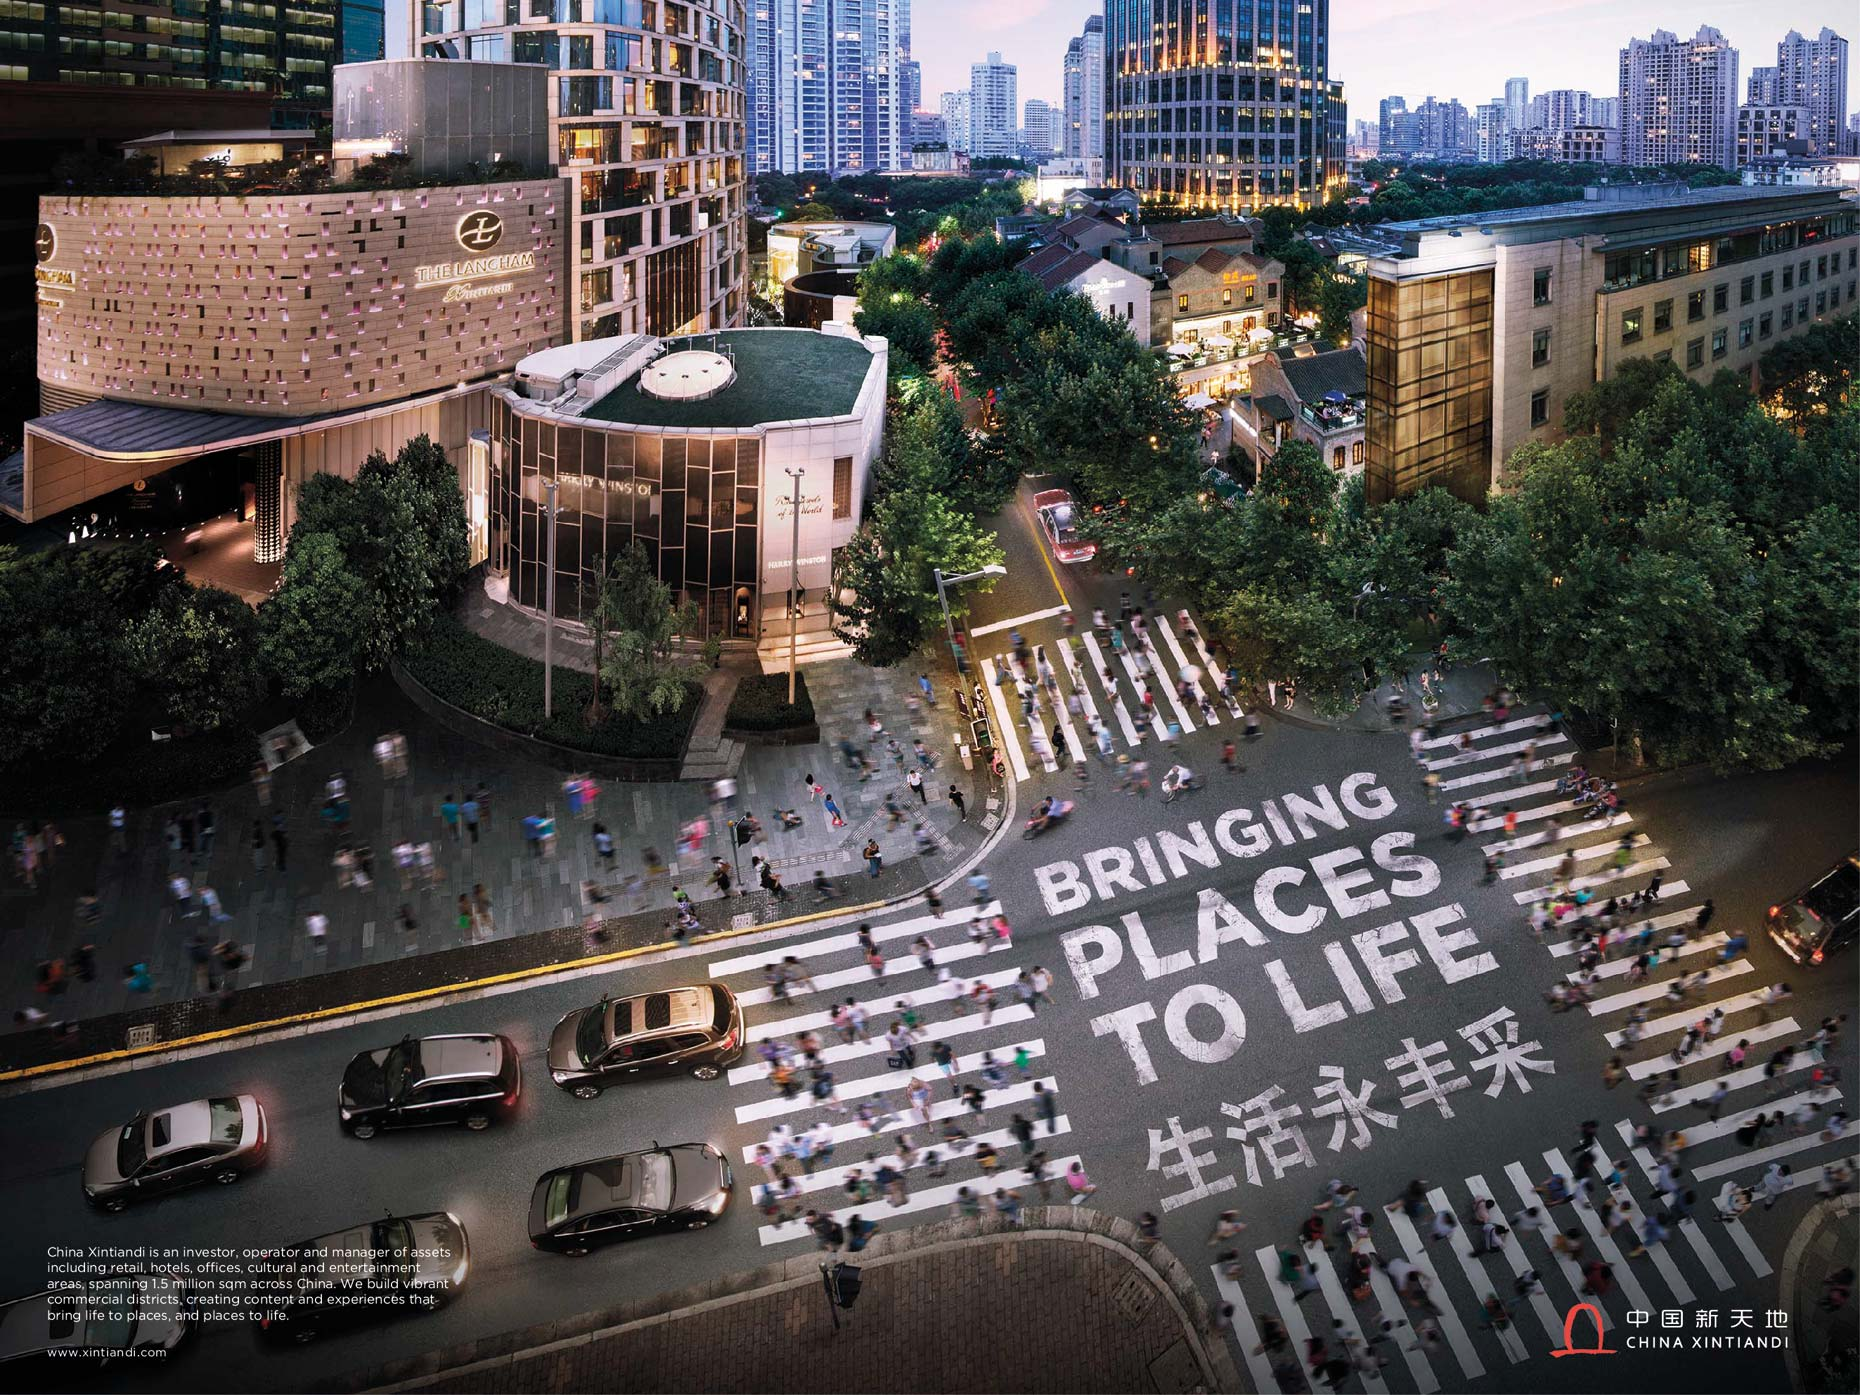 China Xintiandi Advertising Campaign by Photographer Stefen Chow | Advertising Photography | Commercial photography |  Architectural Photography | Property Developer | Shanghai | China | Asia